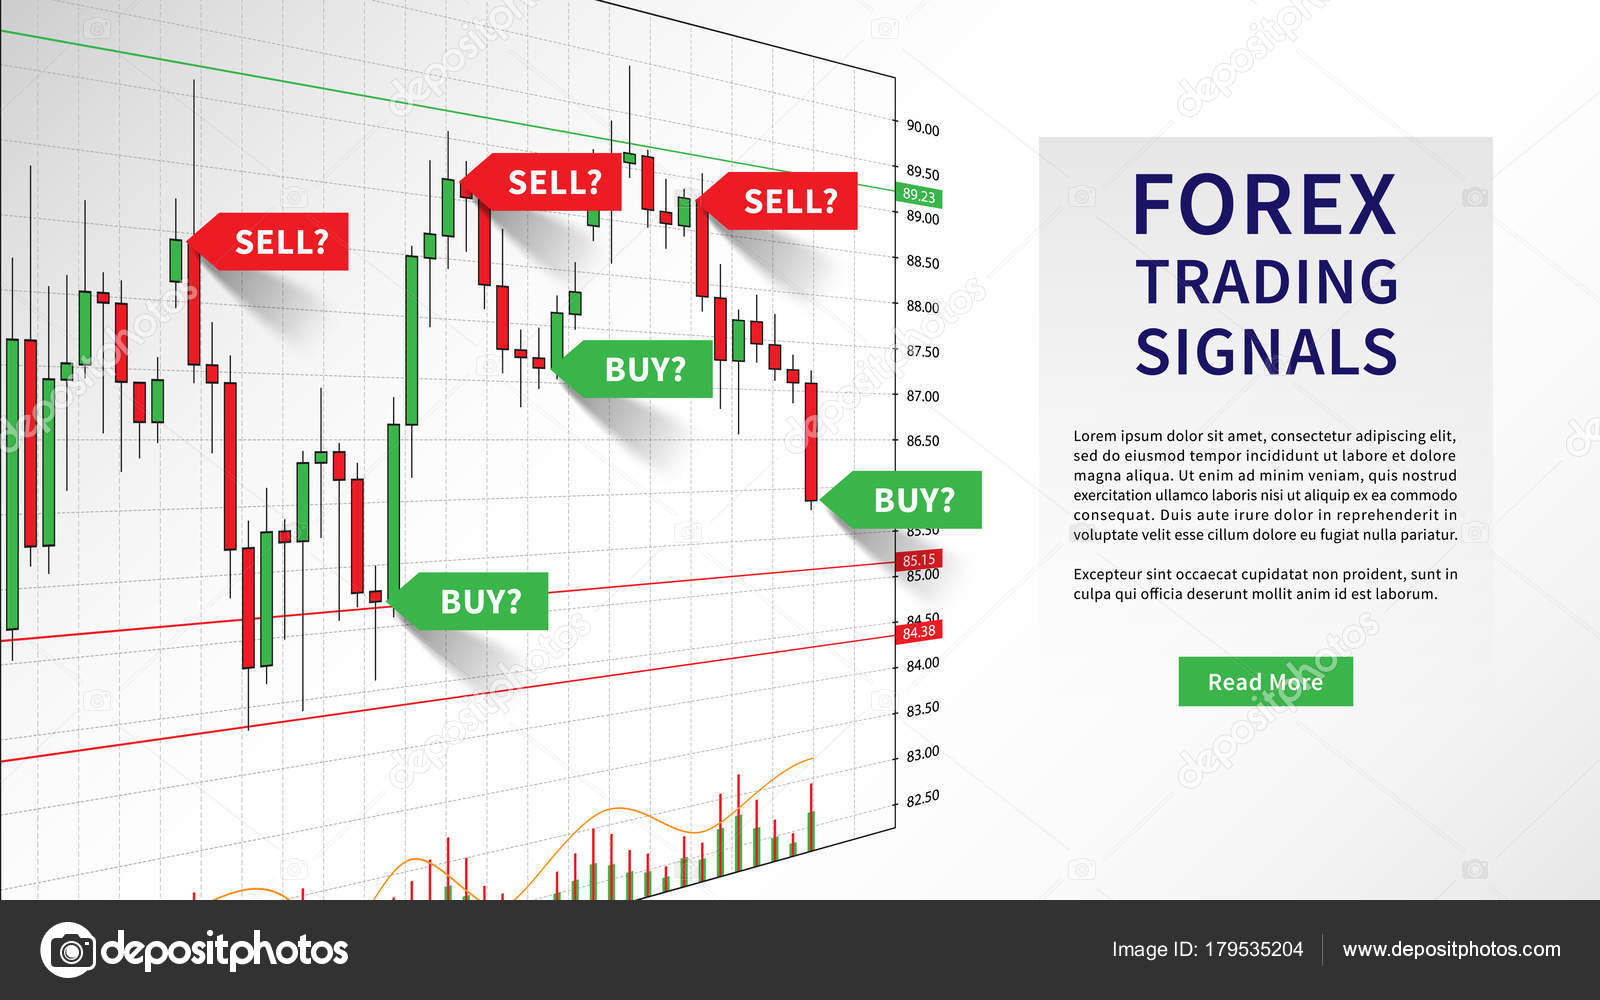 Touching Foreks y trading think